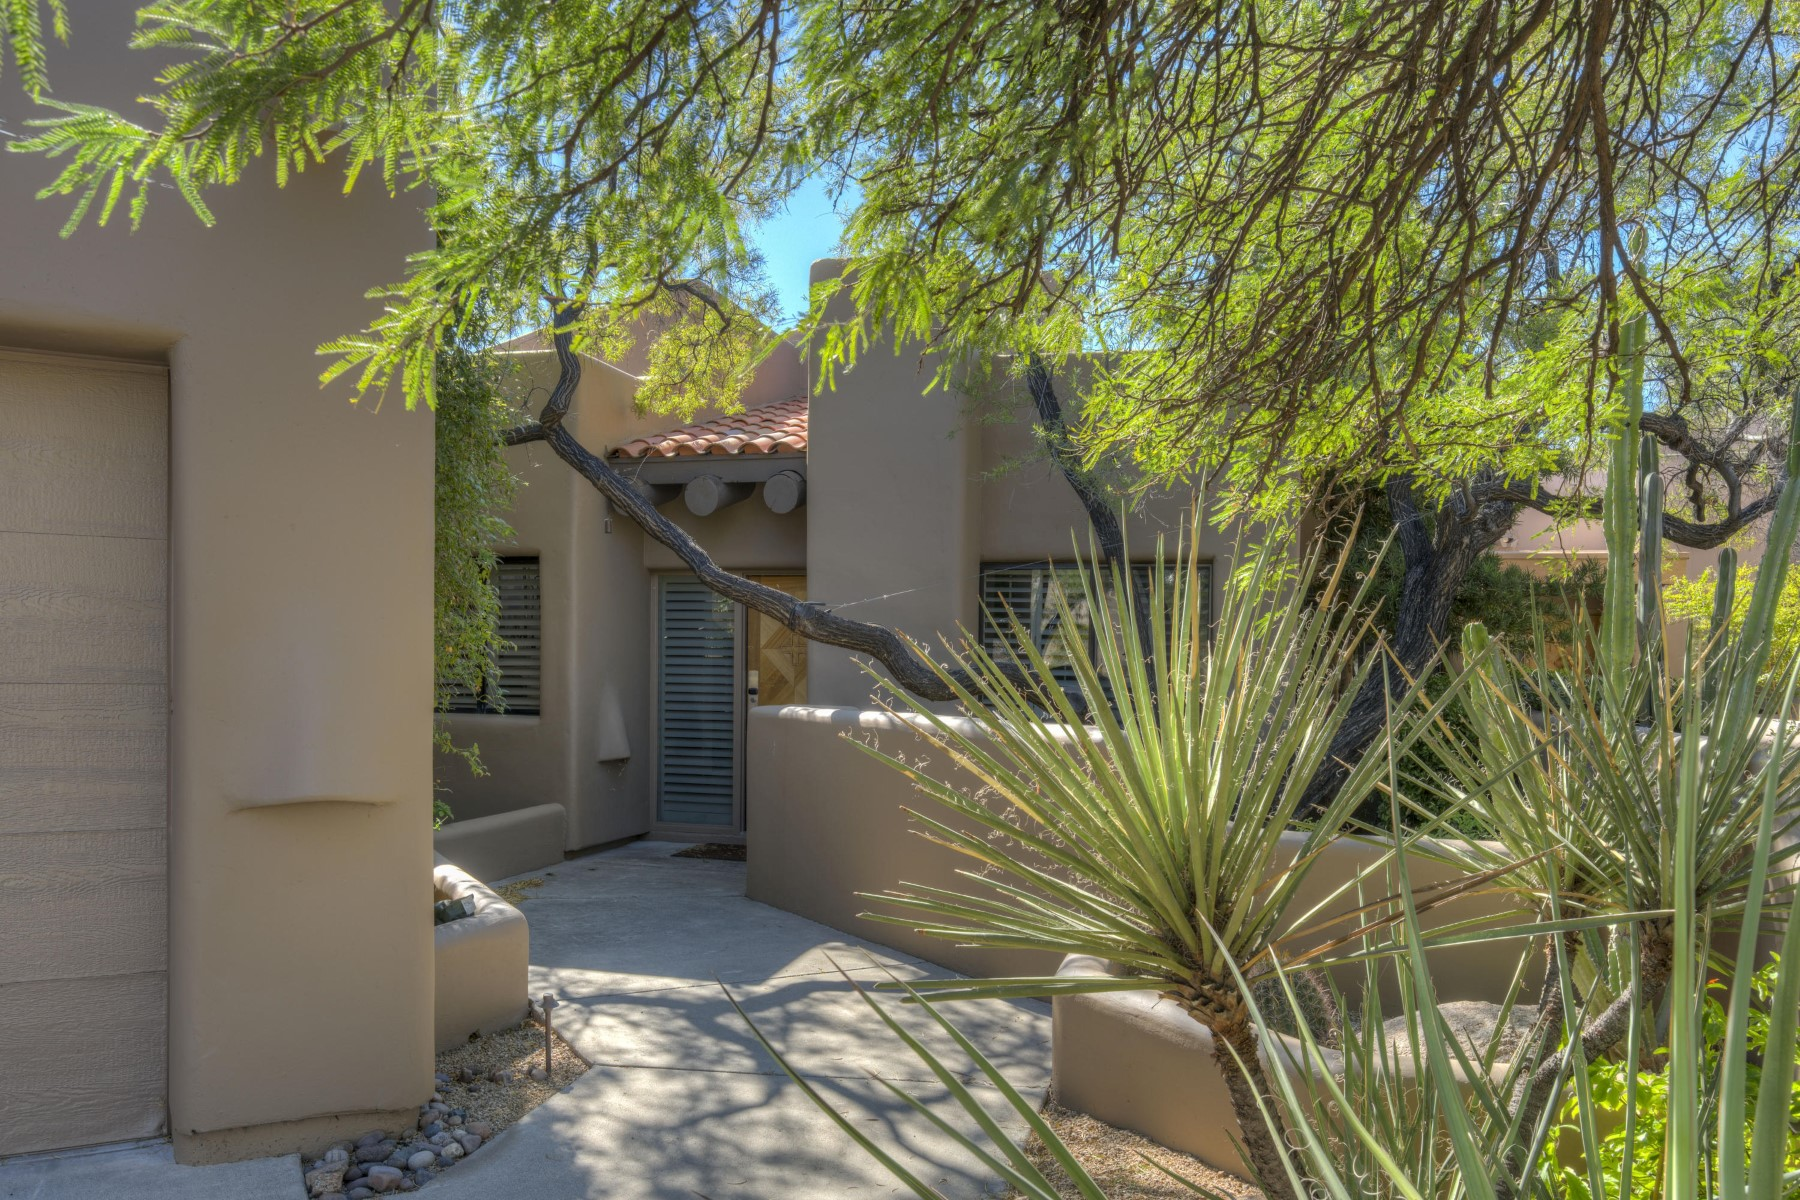 Single Family Home for Sale at Move in ready home in Scttsdale 9112 E Clubhouse Ct Scottsdale, Arizona, 85266 United States